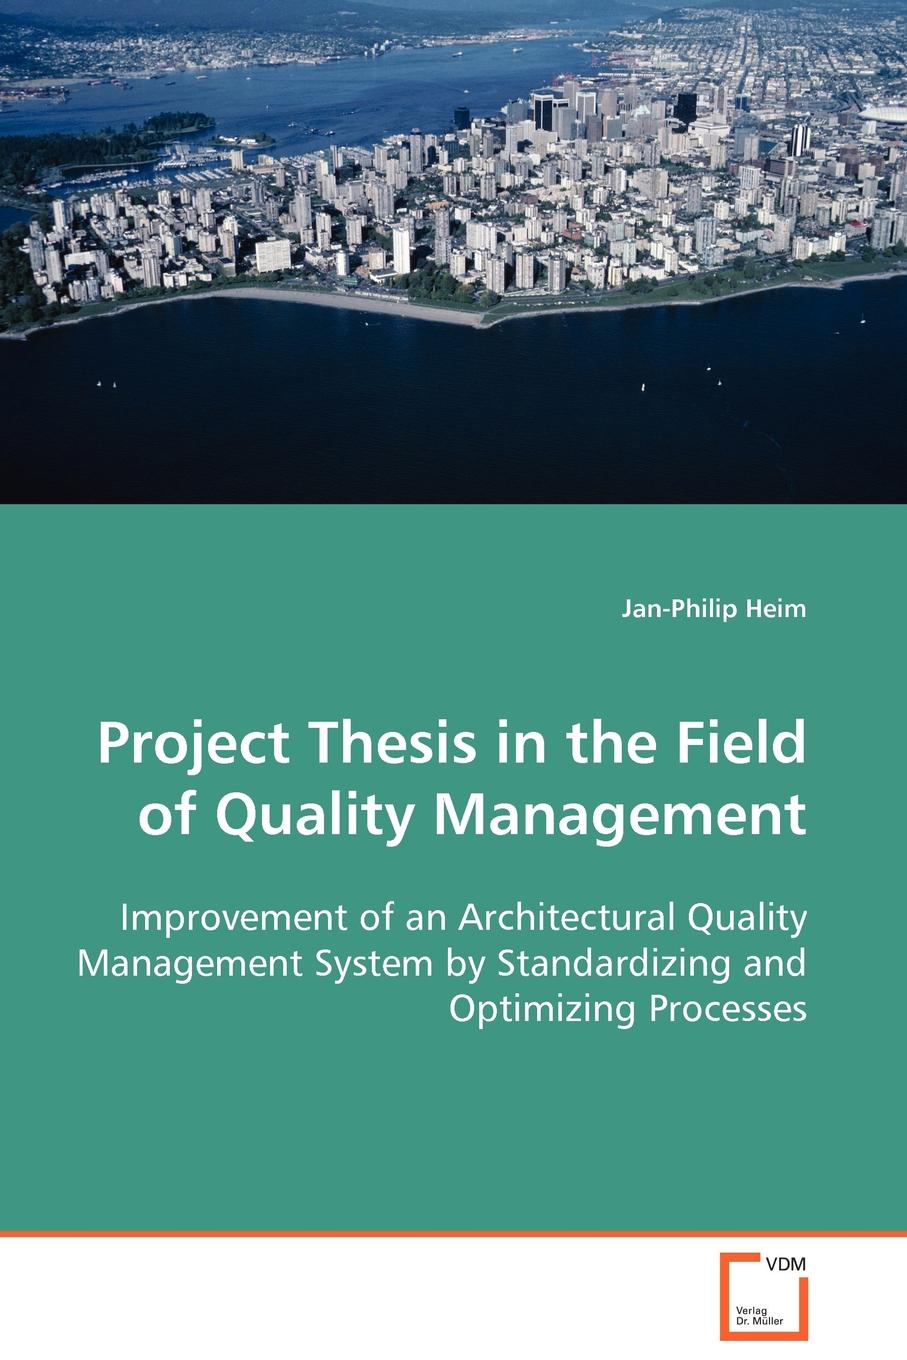 Jan-Philip Heim Project Thesis in the Field of Quality Management charles p quesenberry spc methods for quality improvement